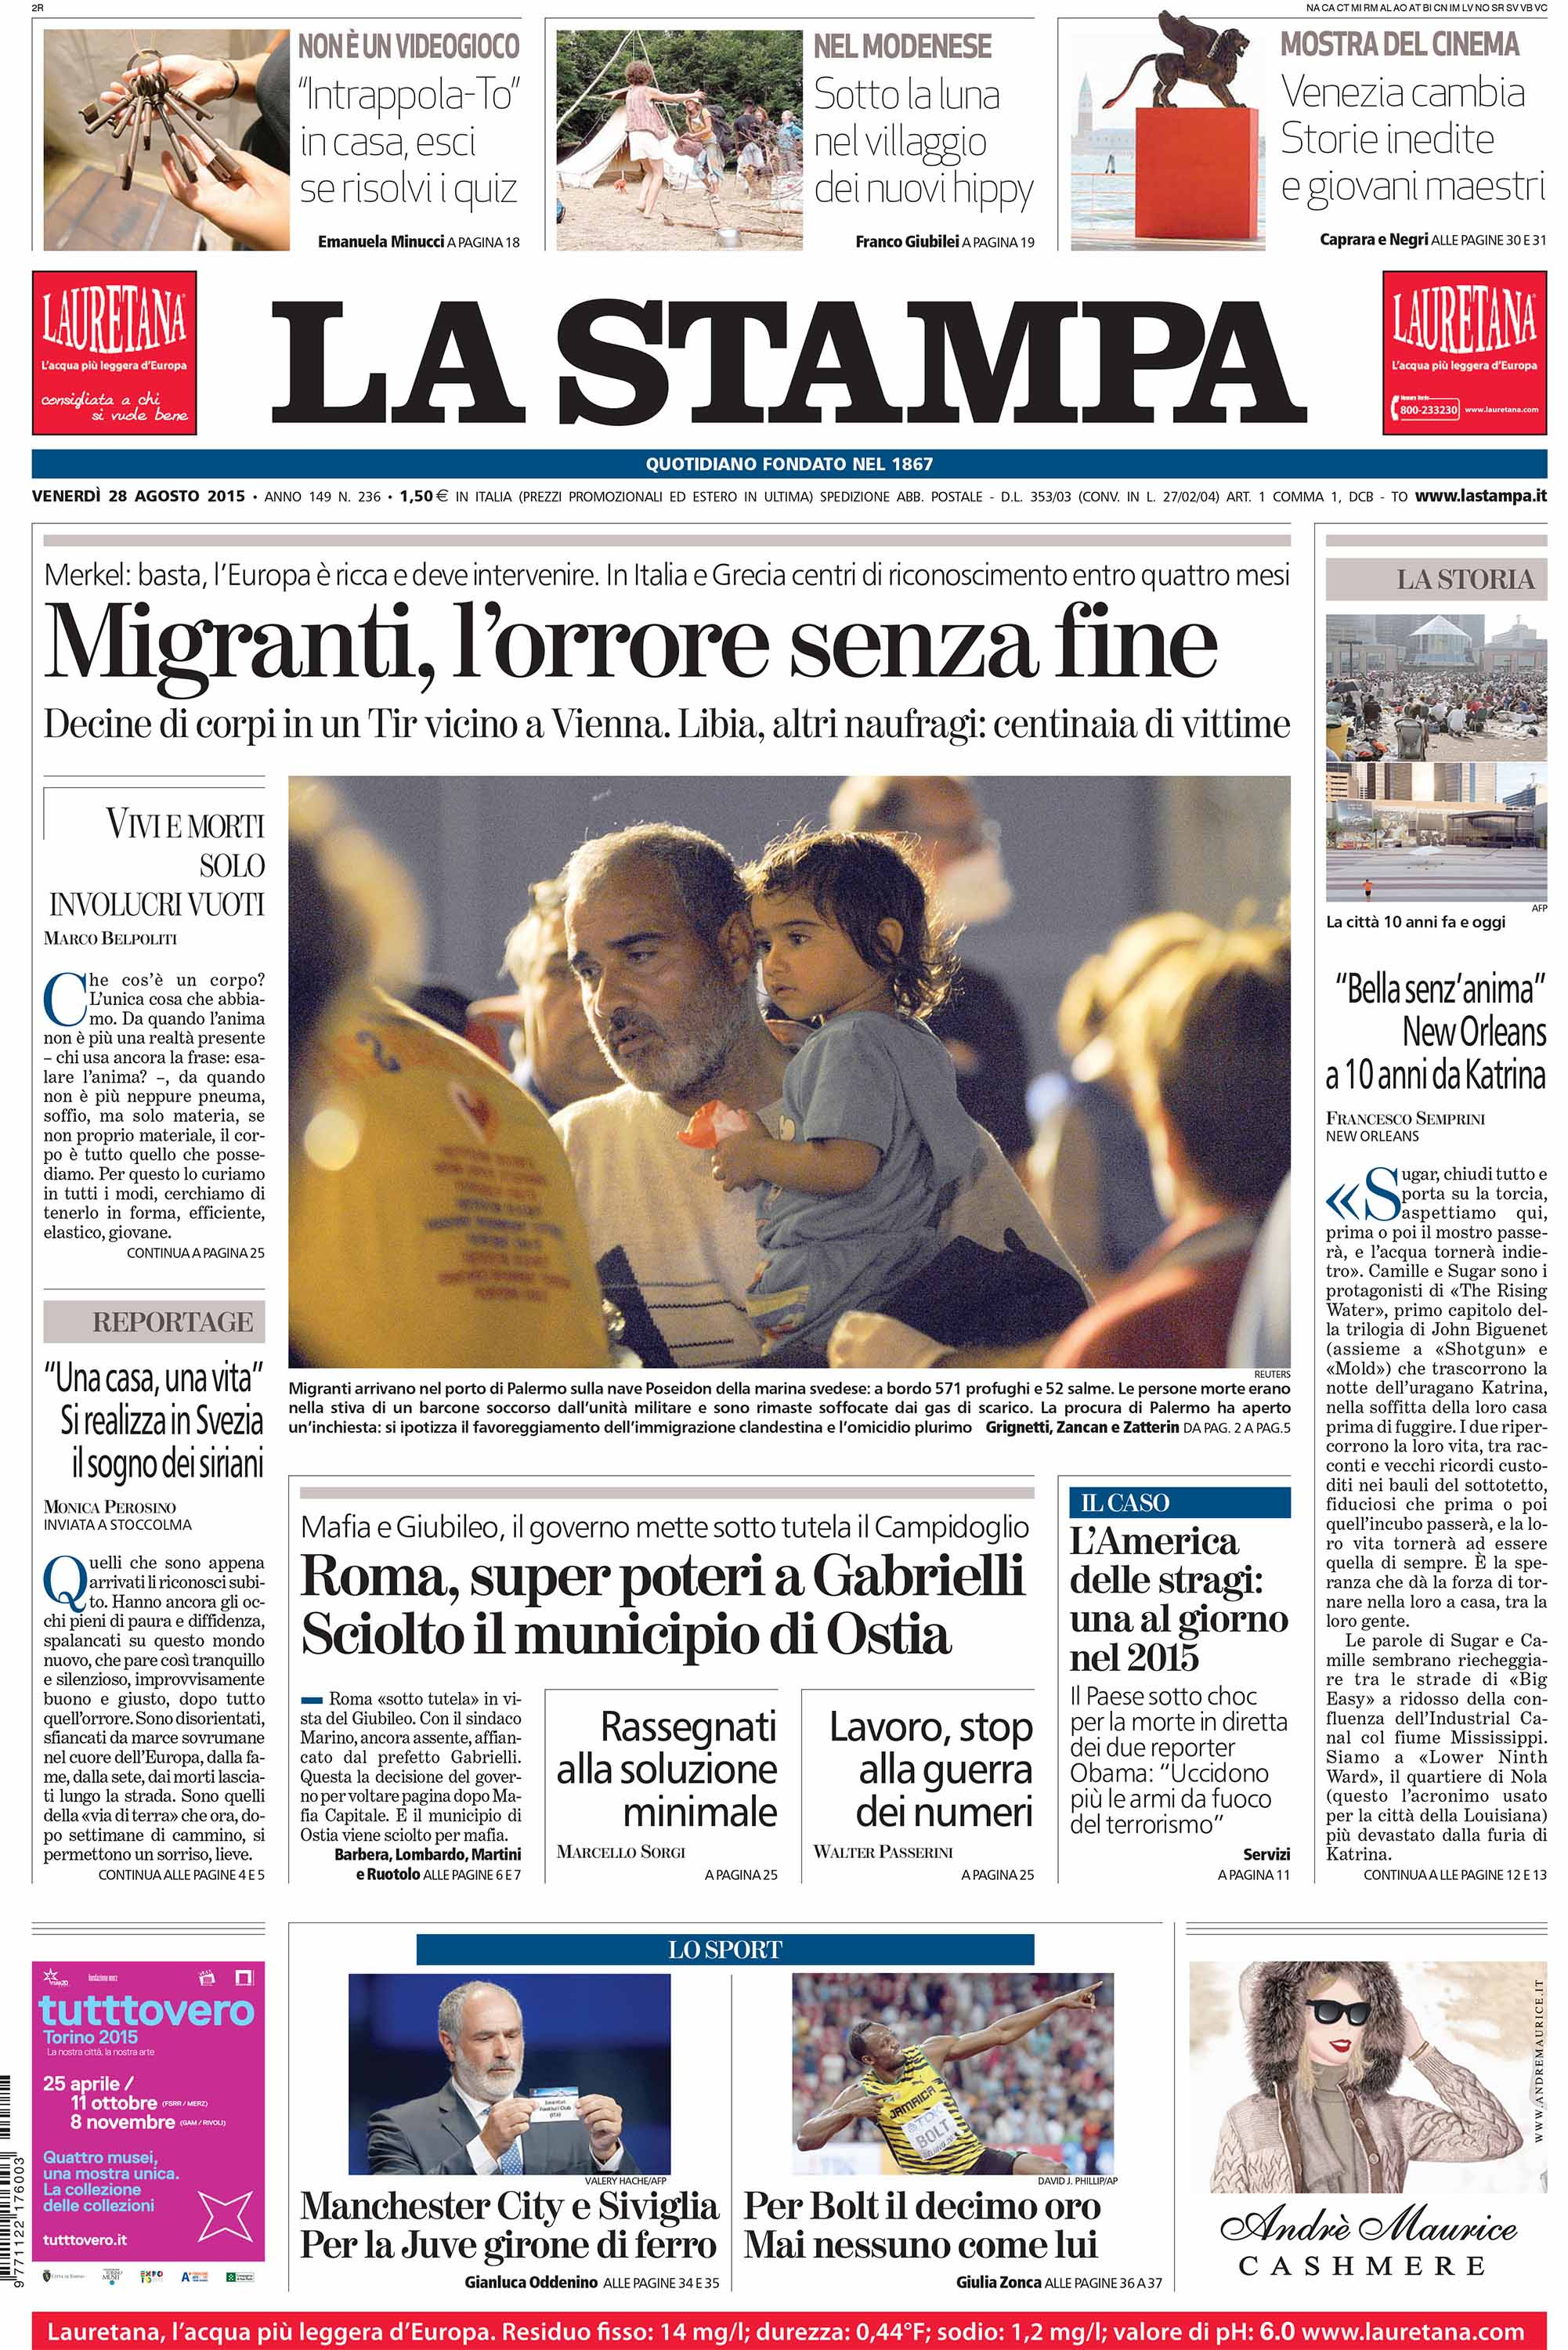 La Stampa — August 28, 2015